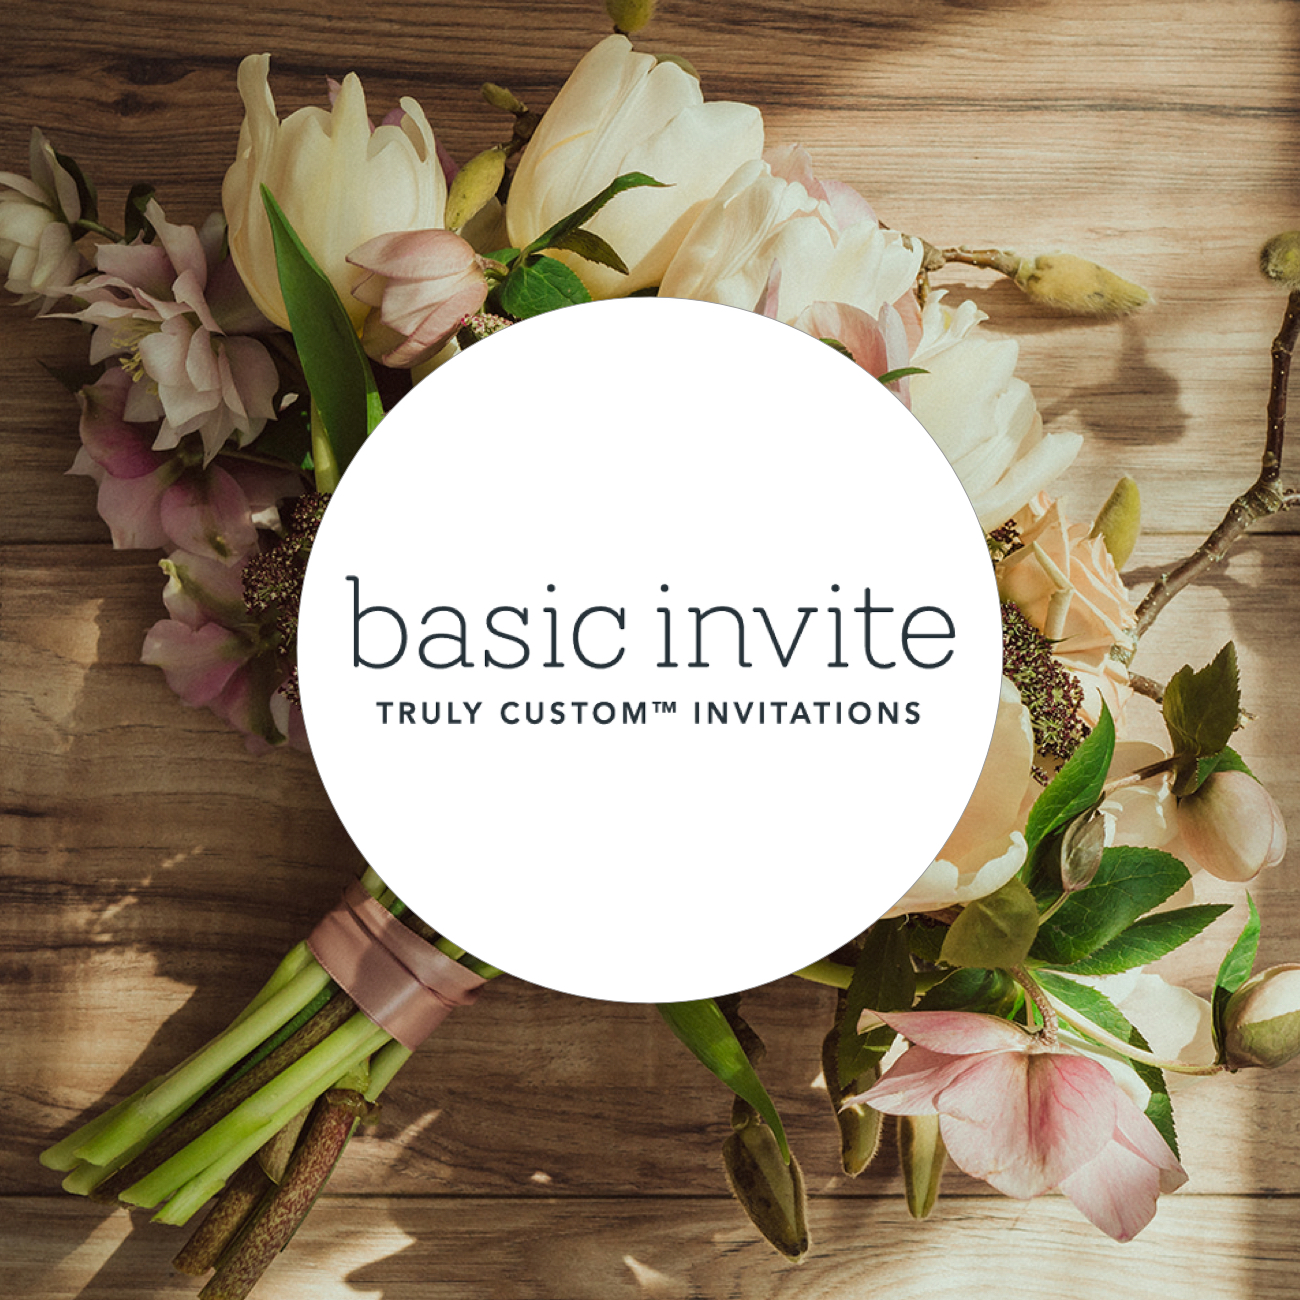 Sibyl_Sophia_Featured_Basic_Invite.jpg